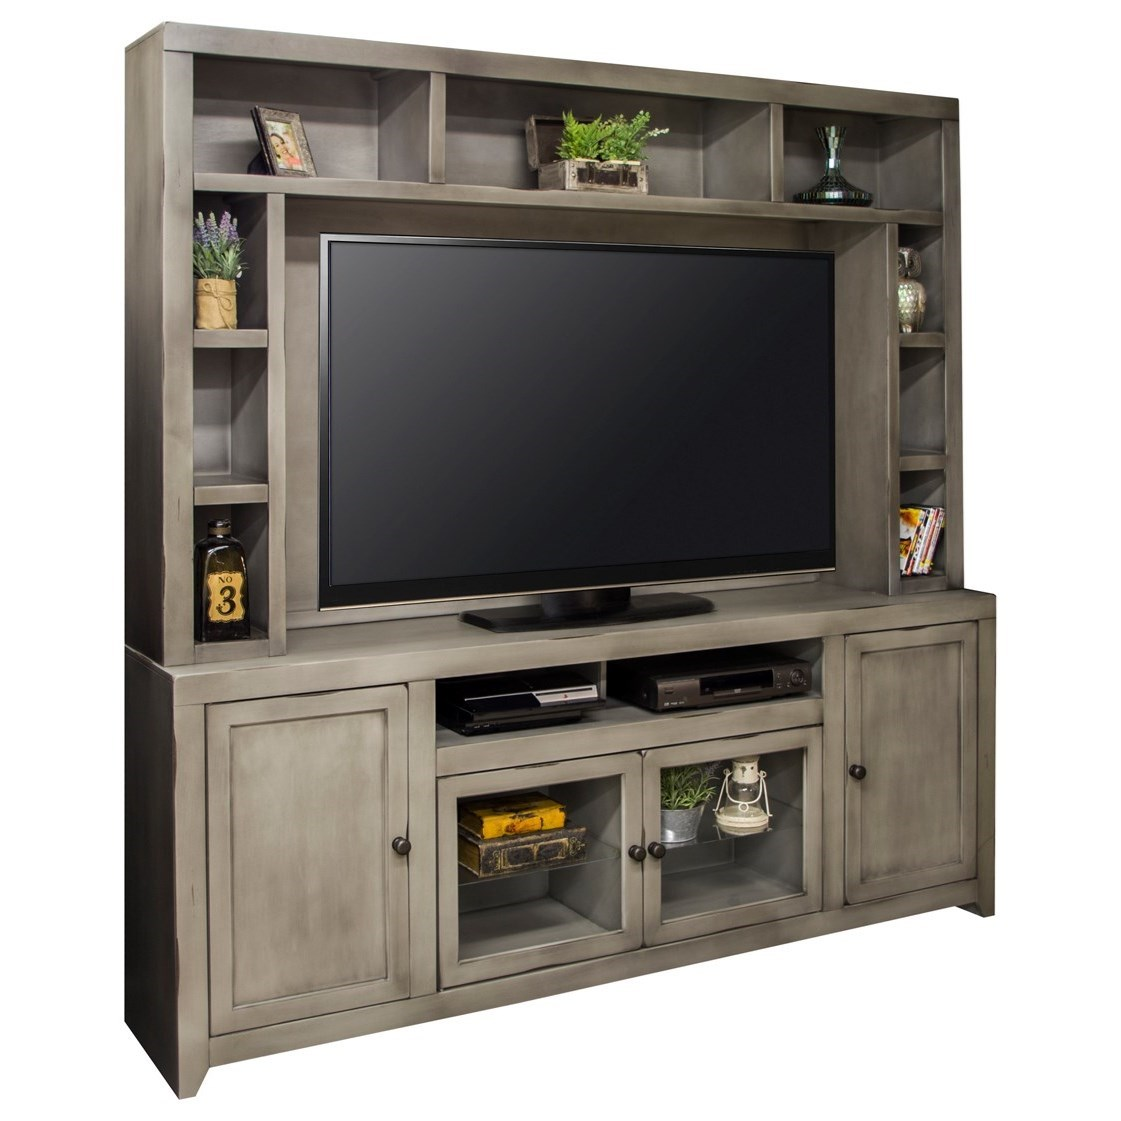 Legends Furniture Astoria Collection Entertainment Wall Console - Item Number: AS1000